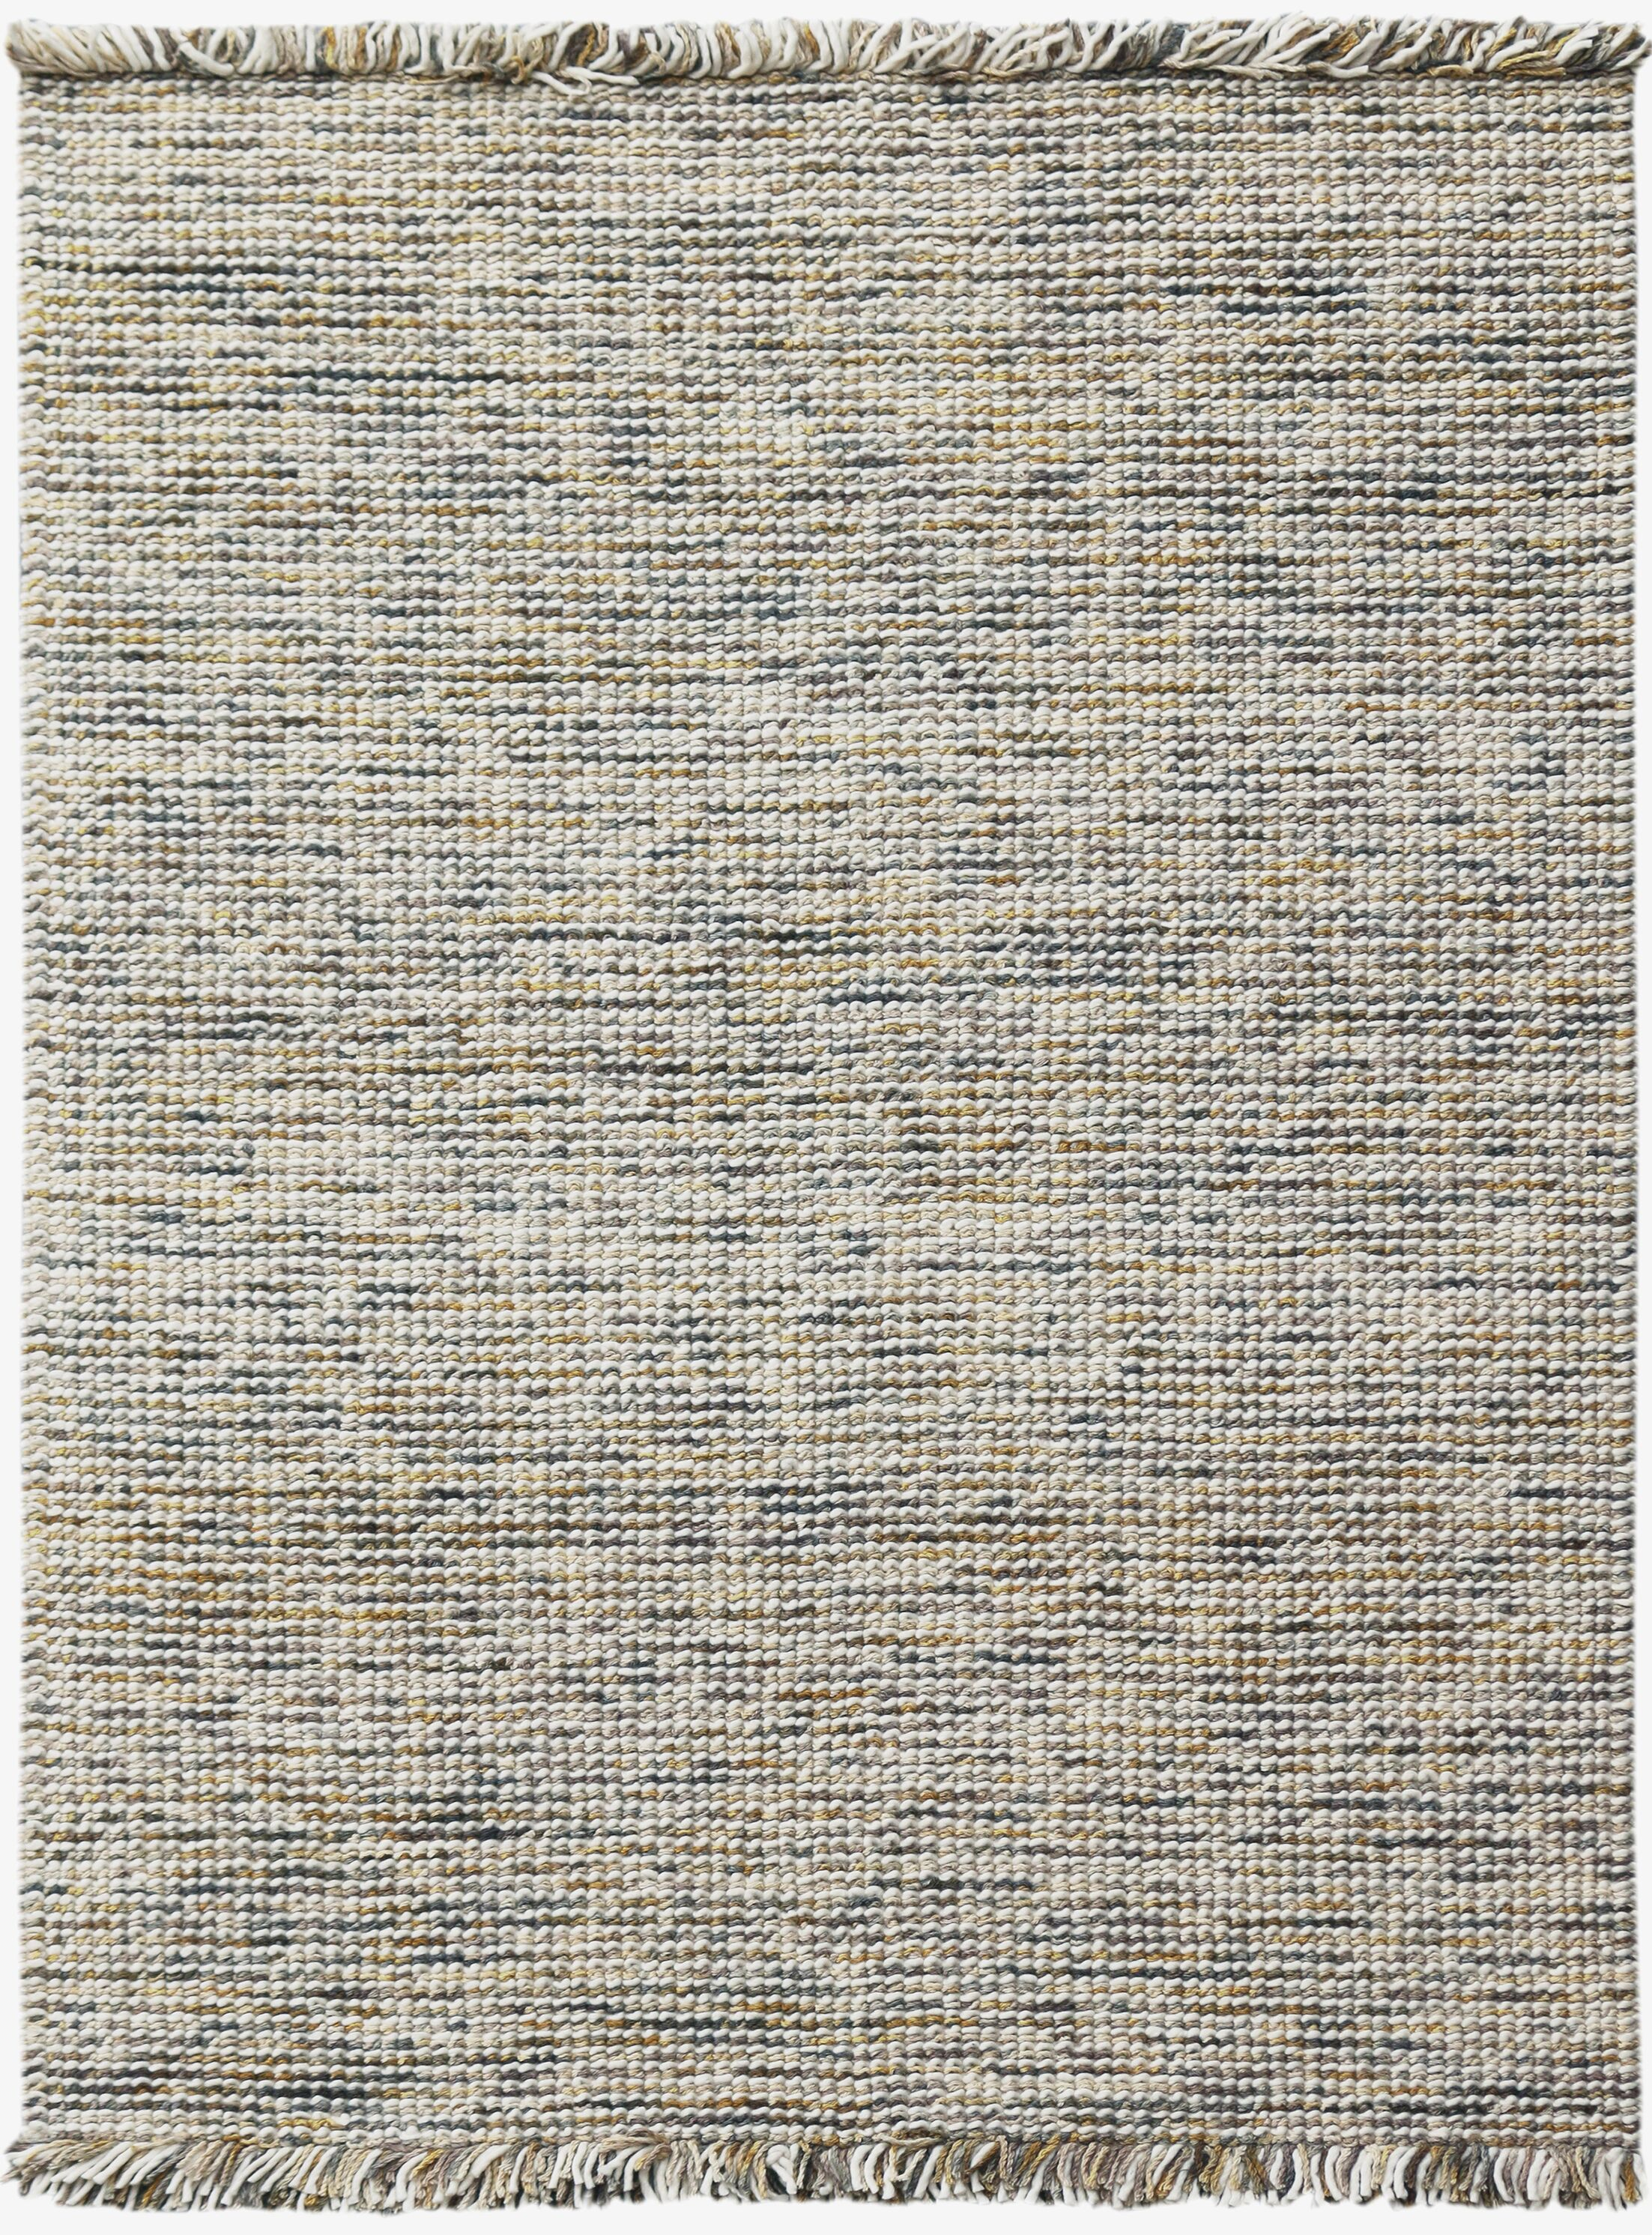 Louth Casual Handwoven Wool/Cotton Gold Area Rug Rug Size: Rectangle 5' x 7'6